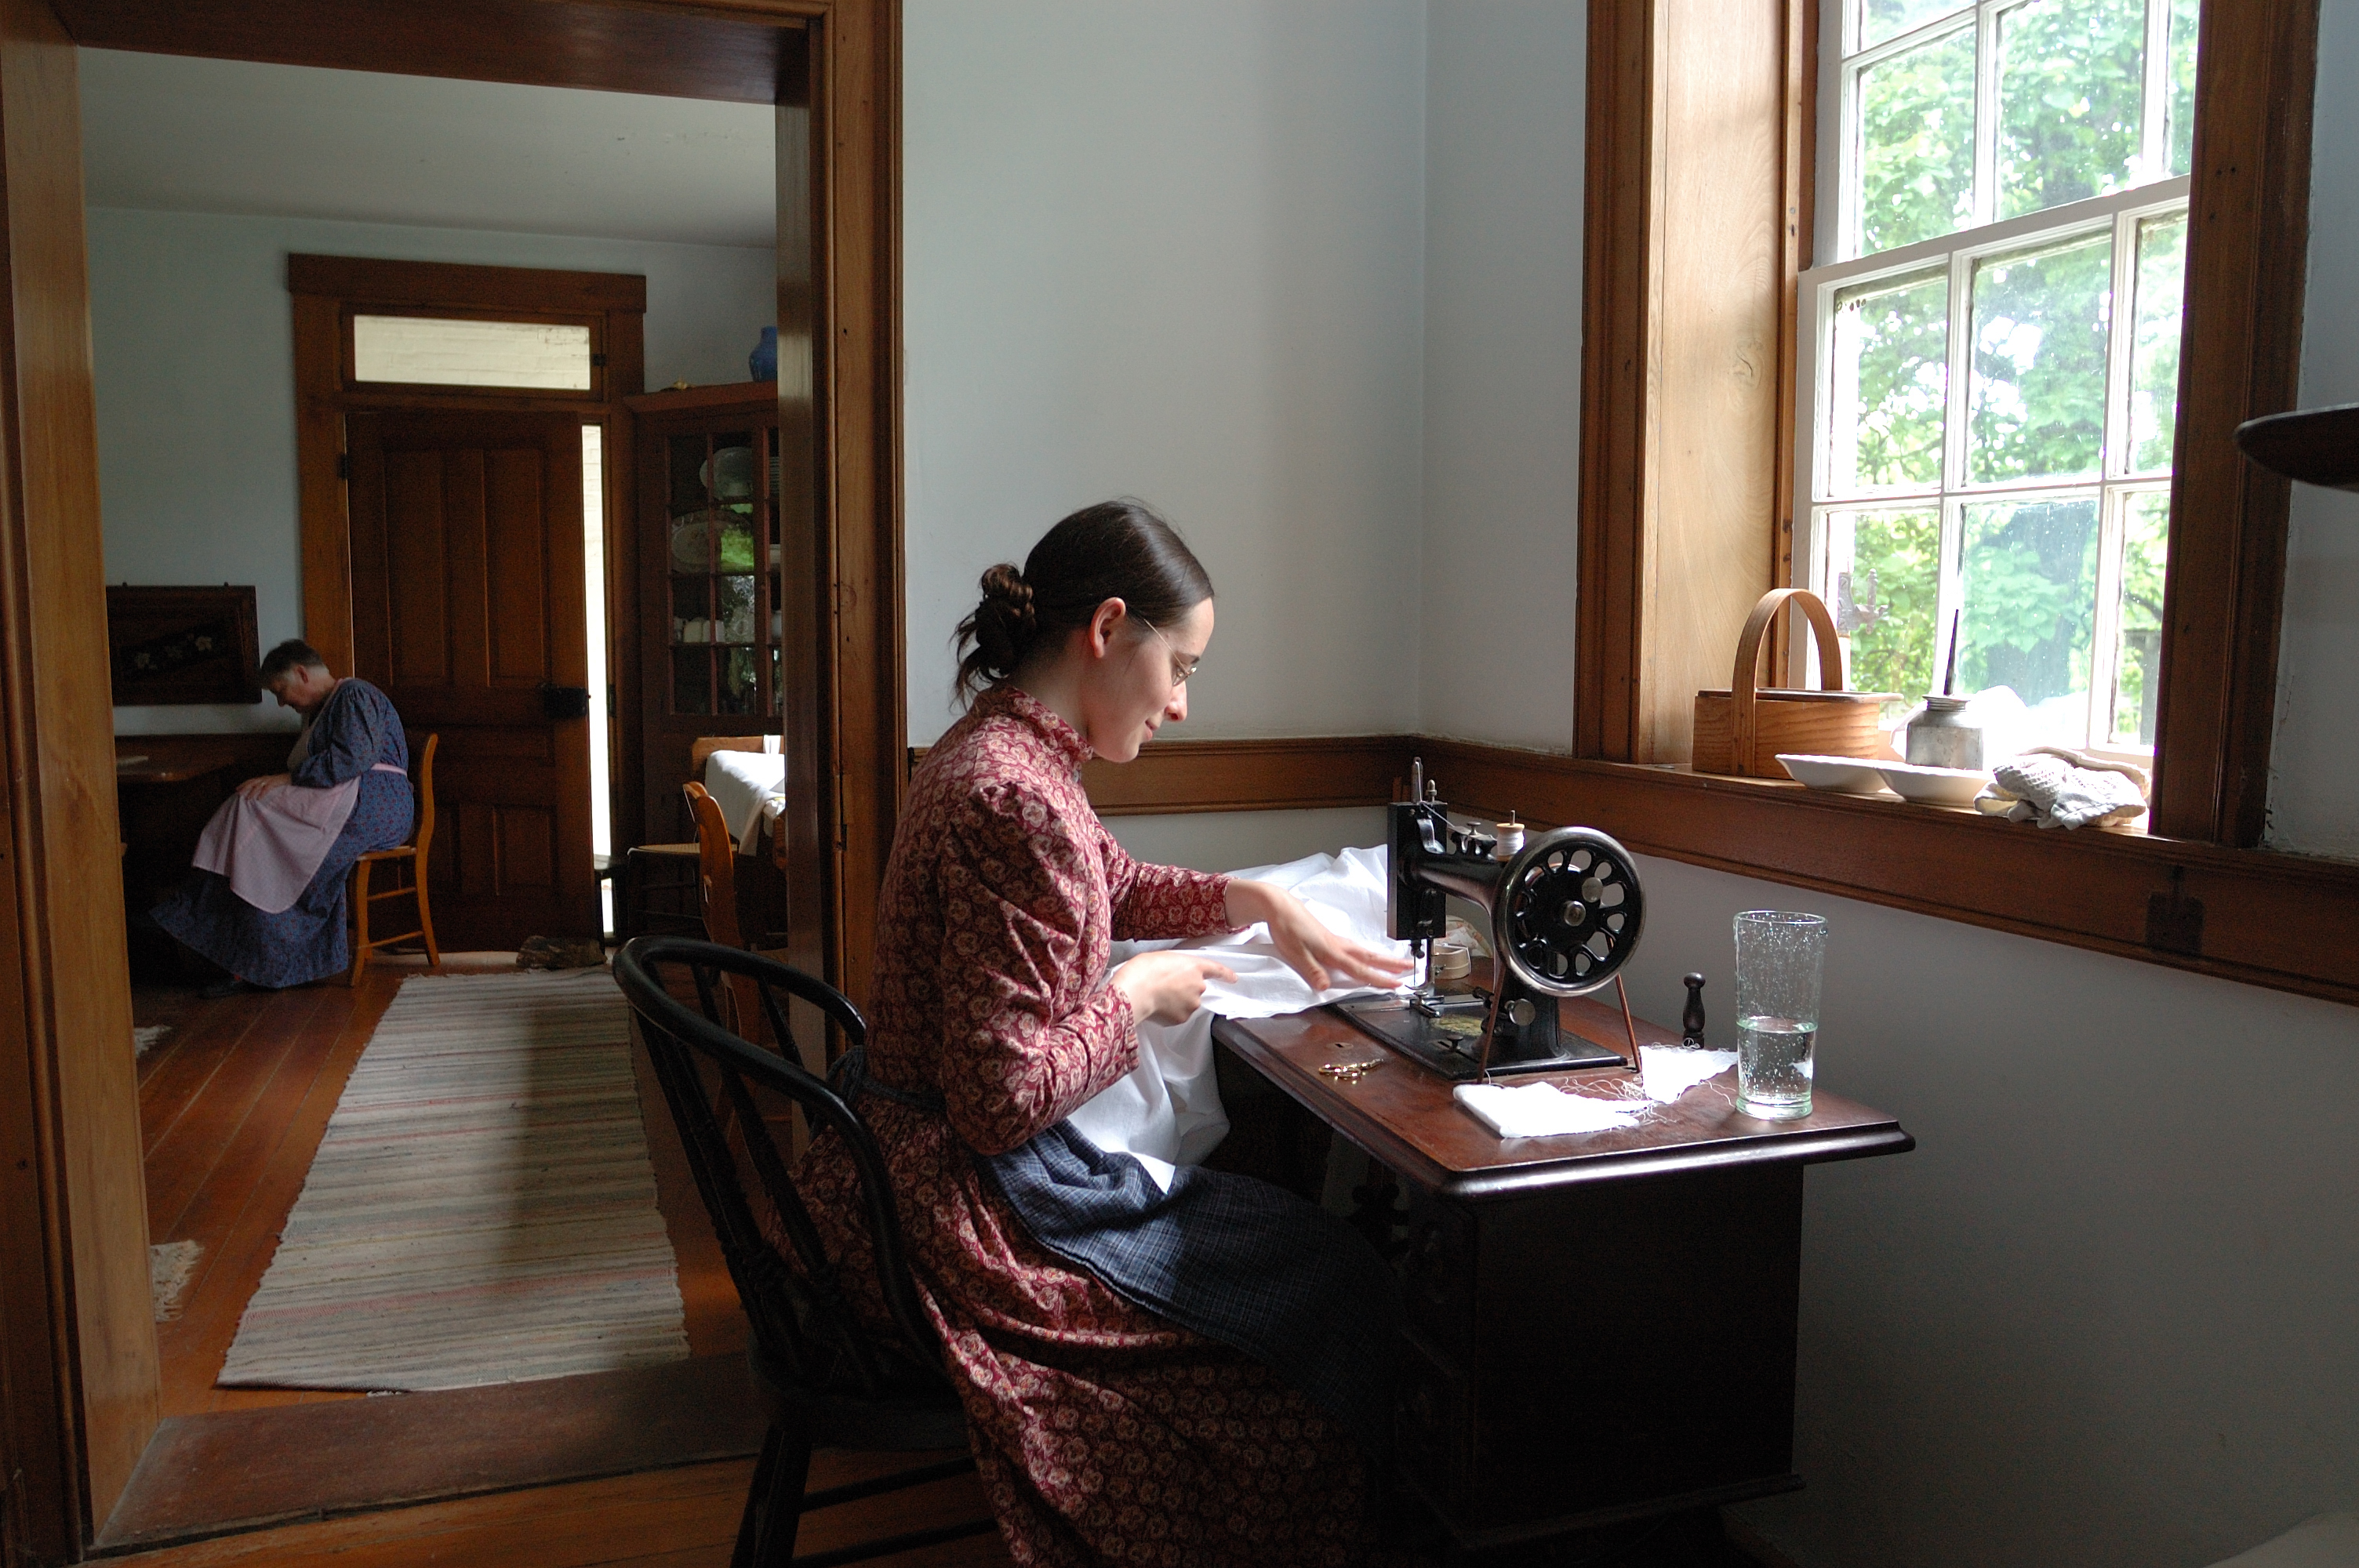 Historic interpreters demonstrate various 19th century skills on a daily basis.